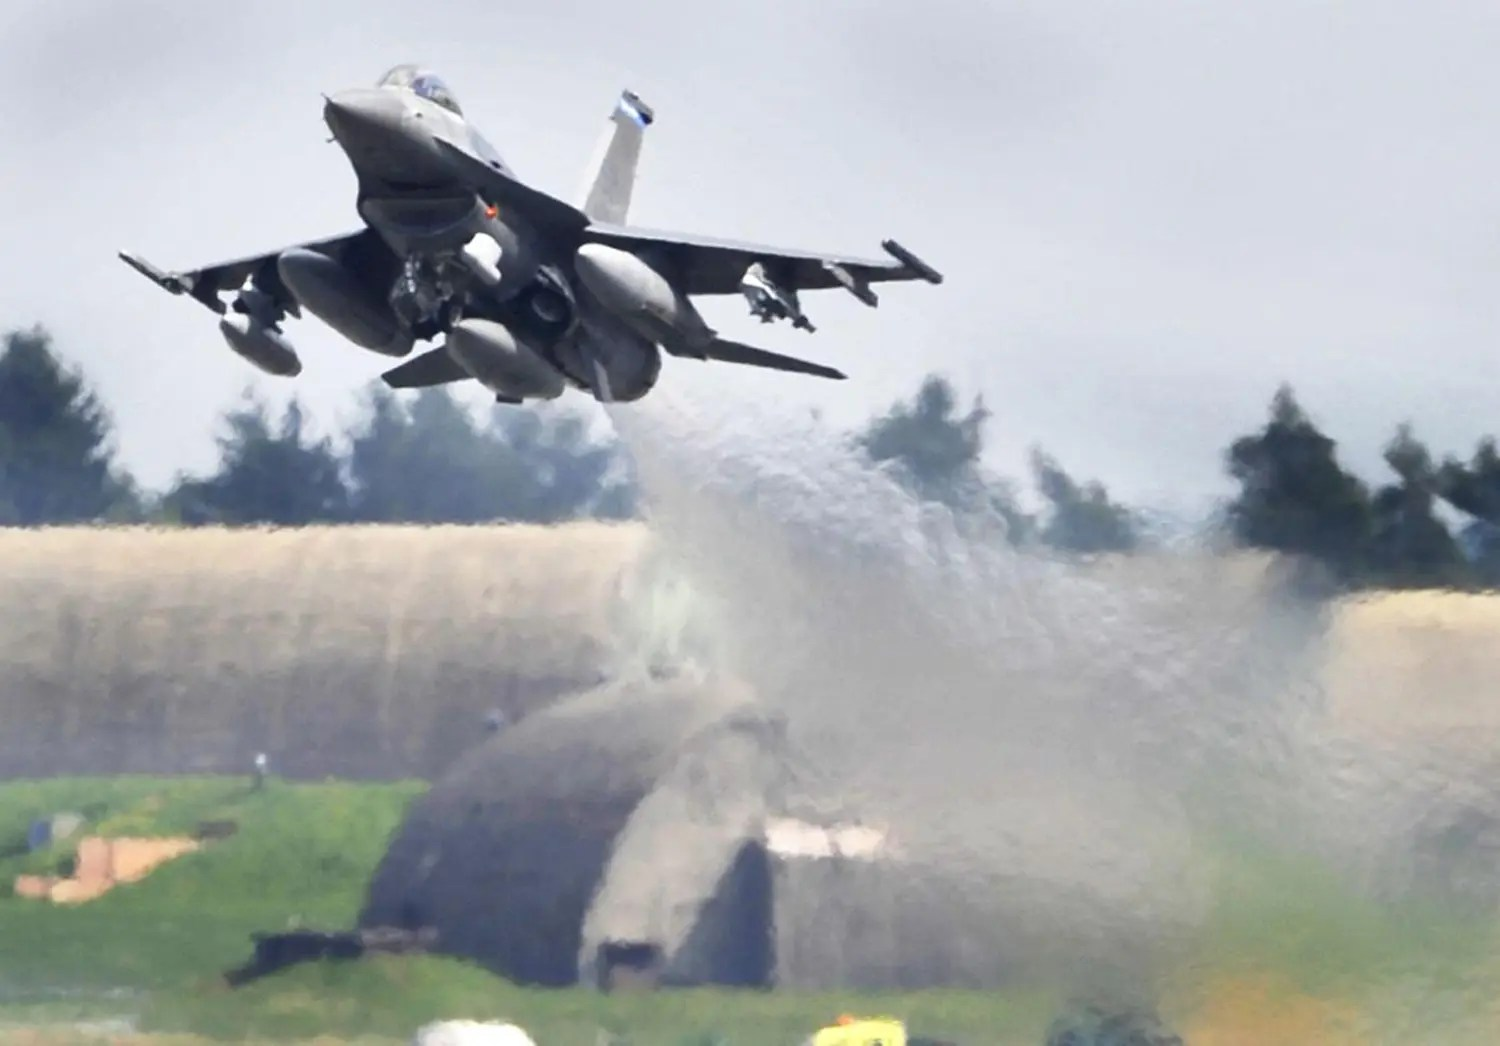 U.S. Air Force F-16 fighter jet crashes in Germany